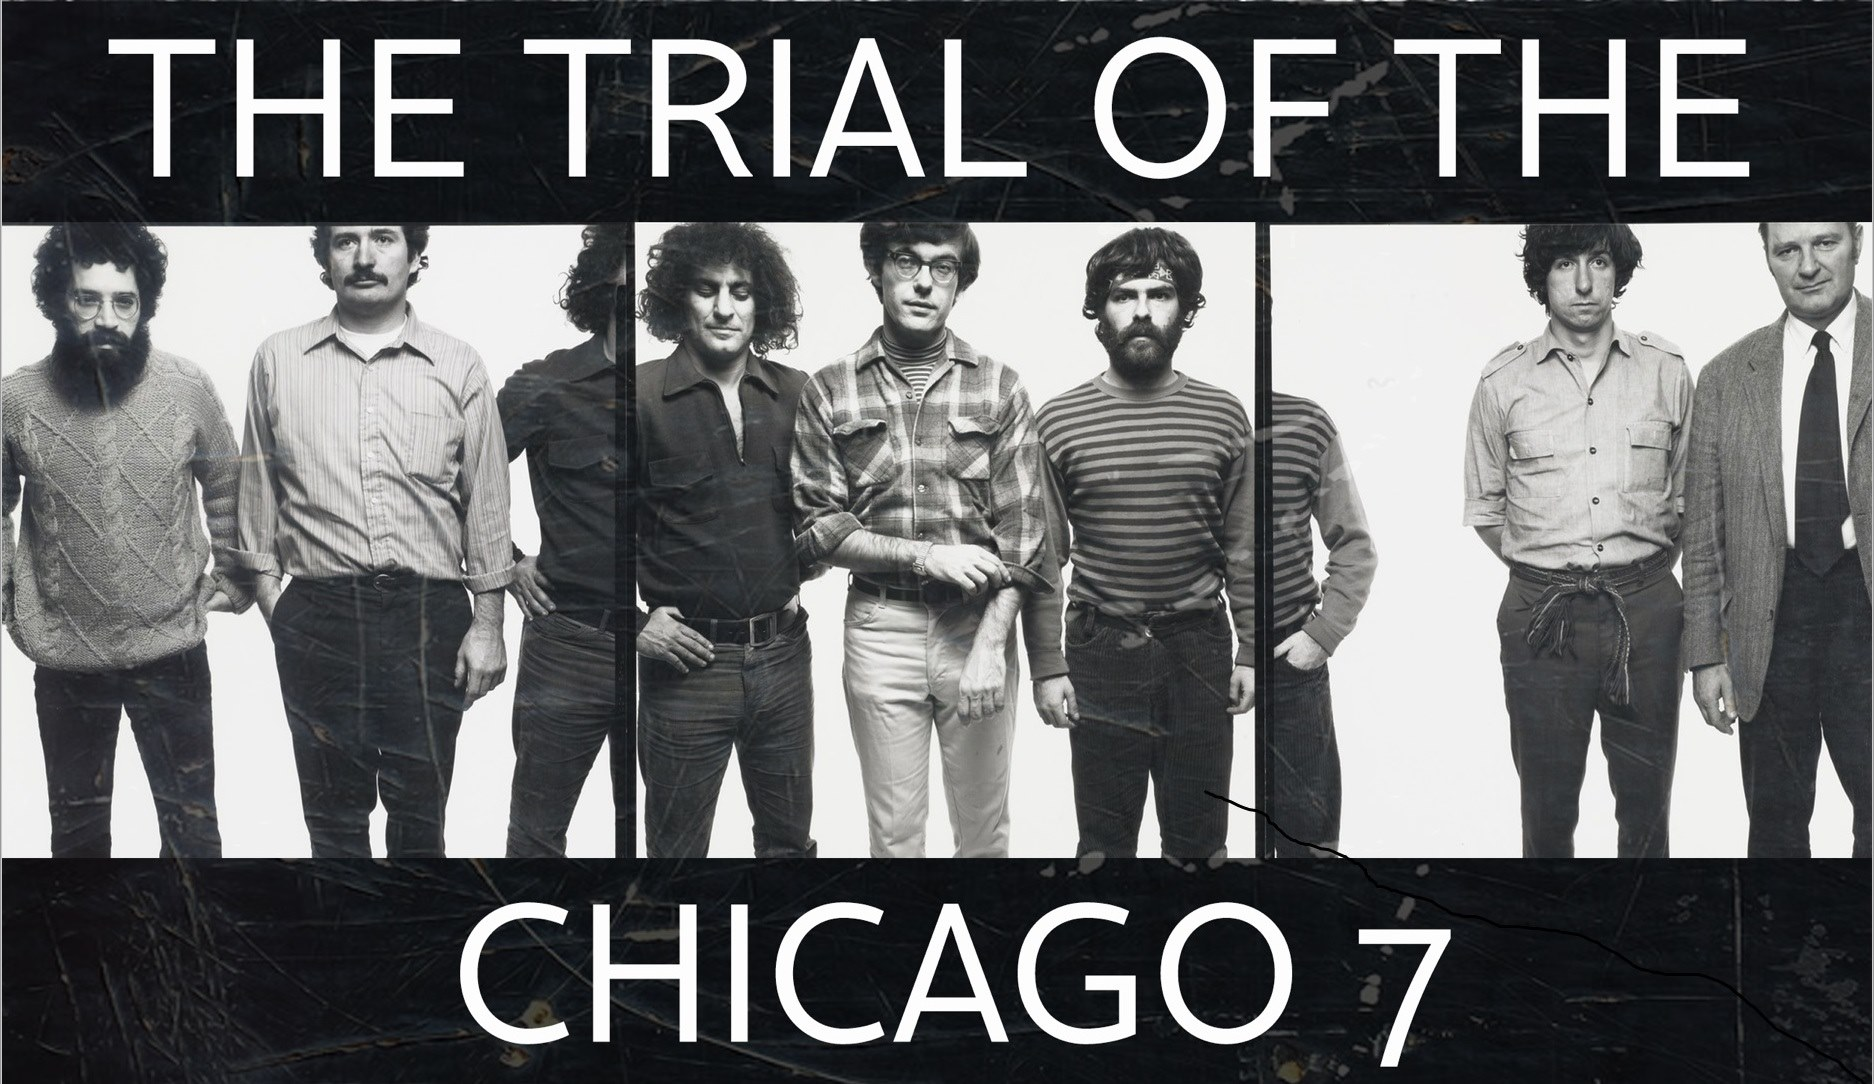 phim điện ảnh 2020 the trial of the chicago